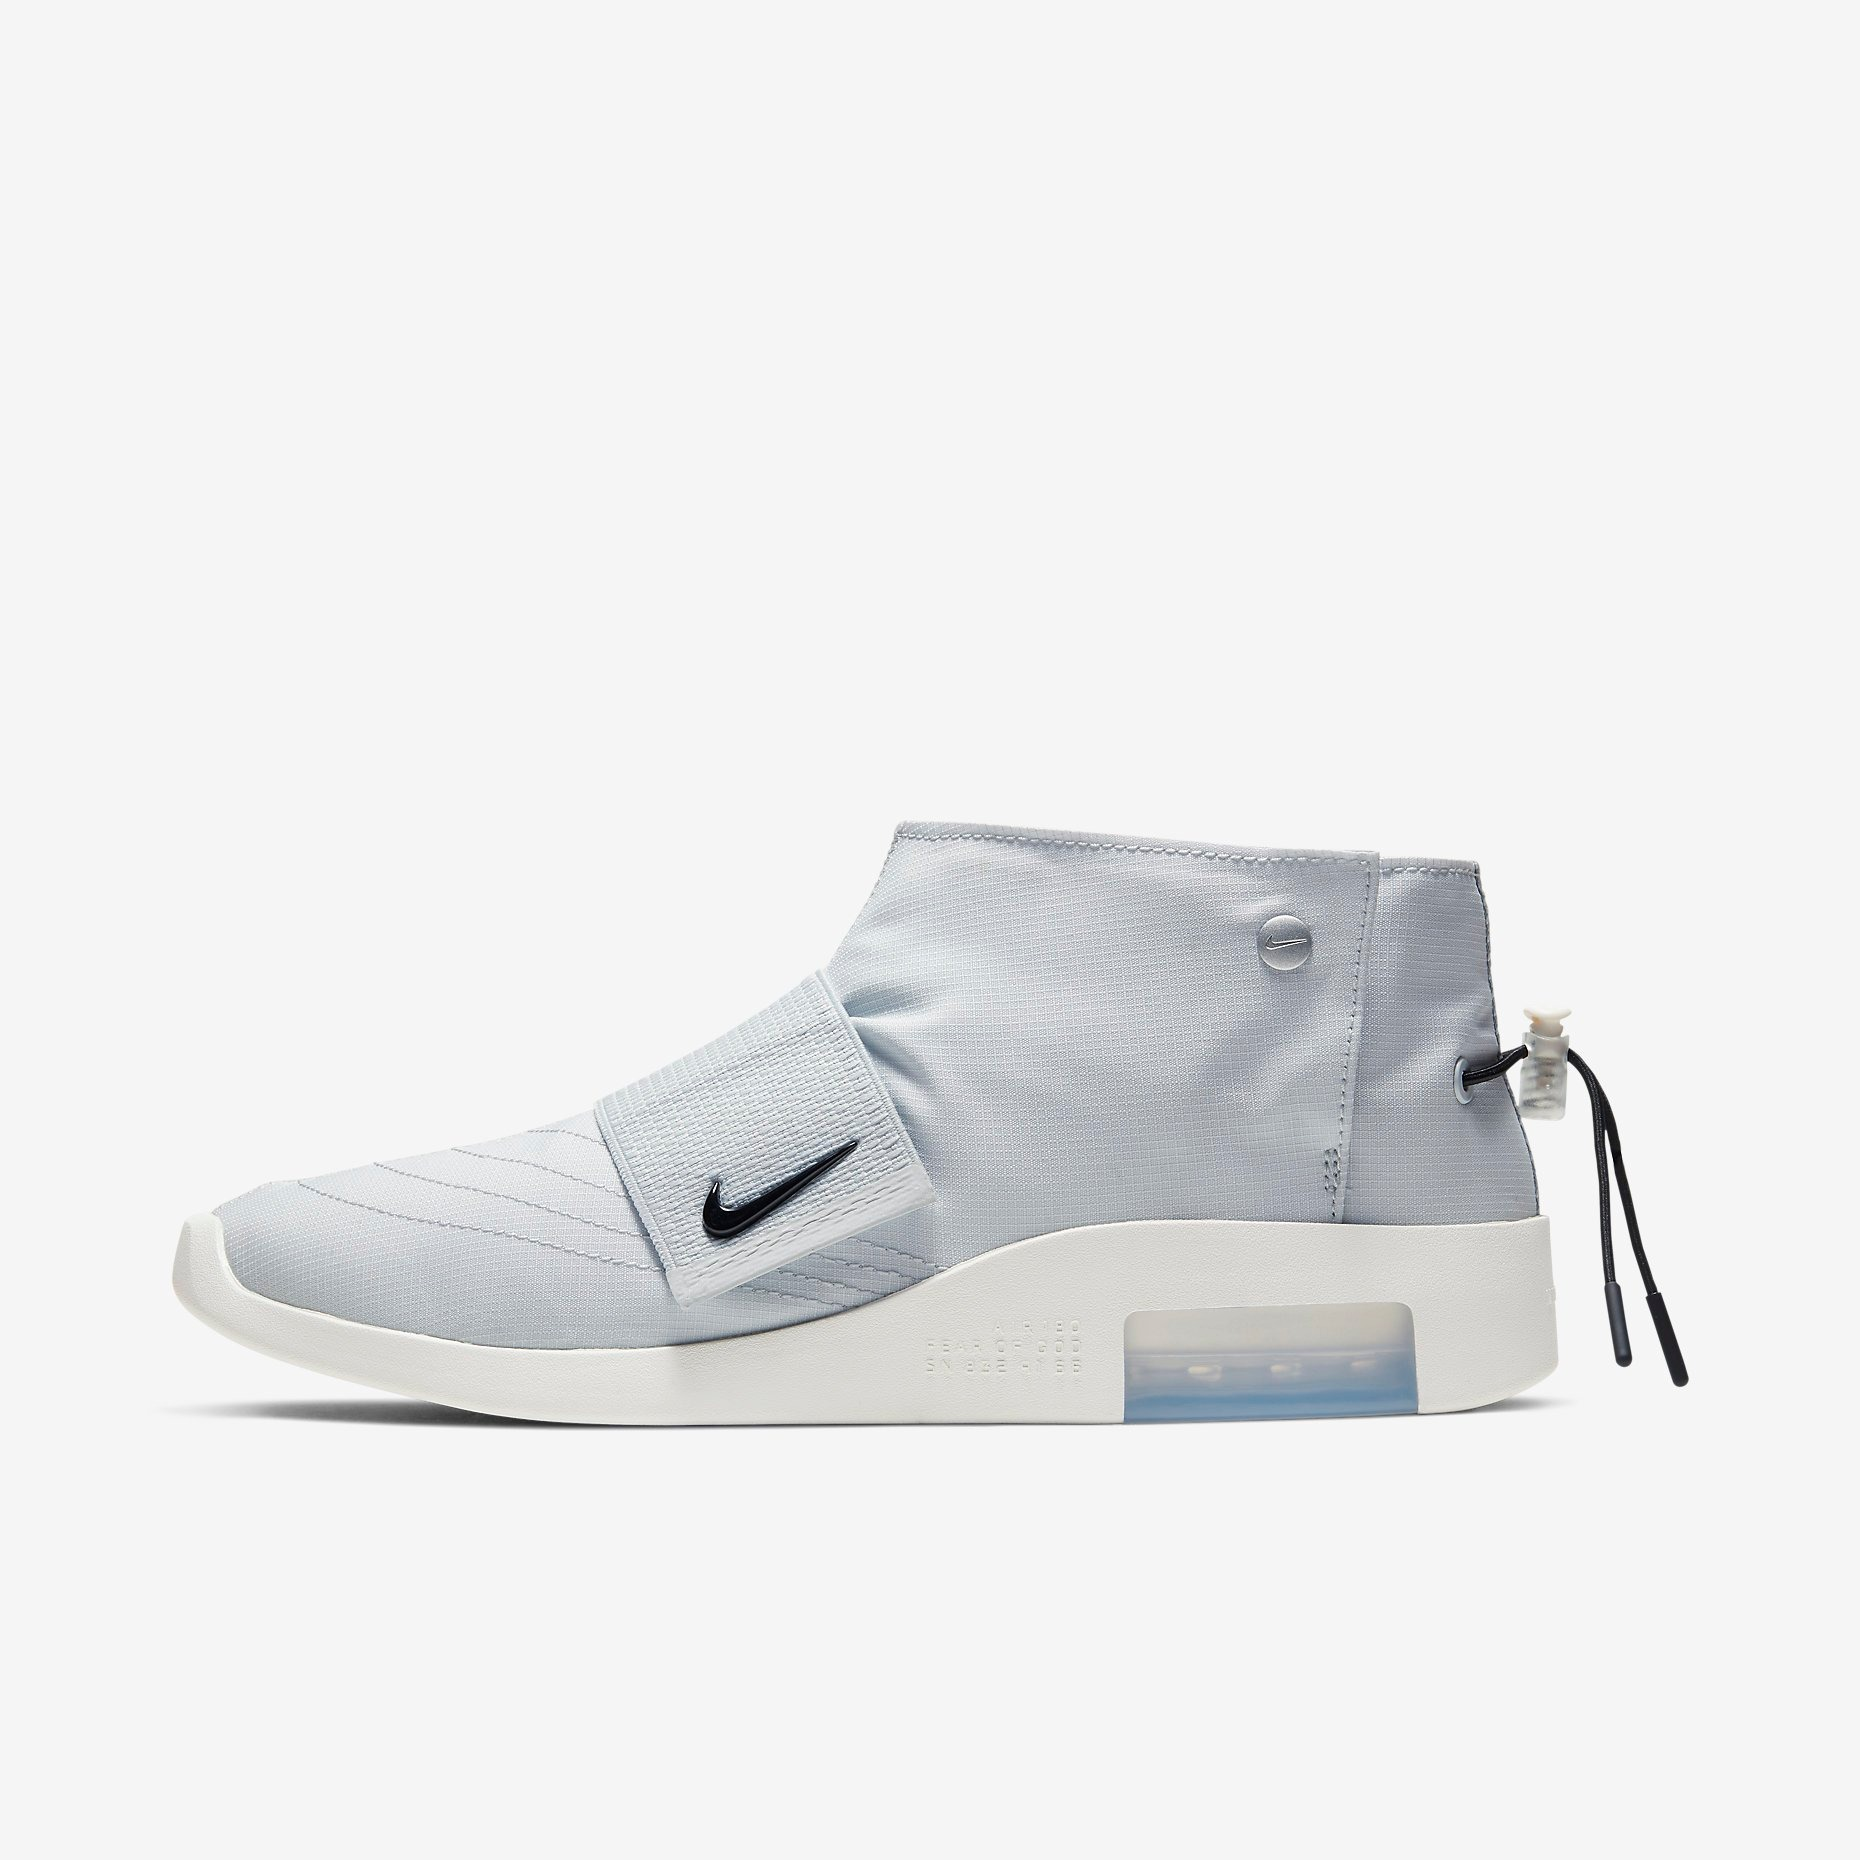 Fear of God x Nike Moccasin Pure Platinum 1